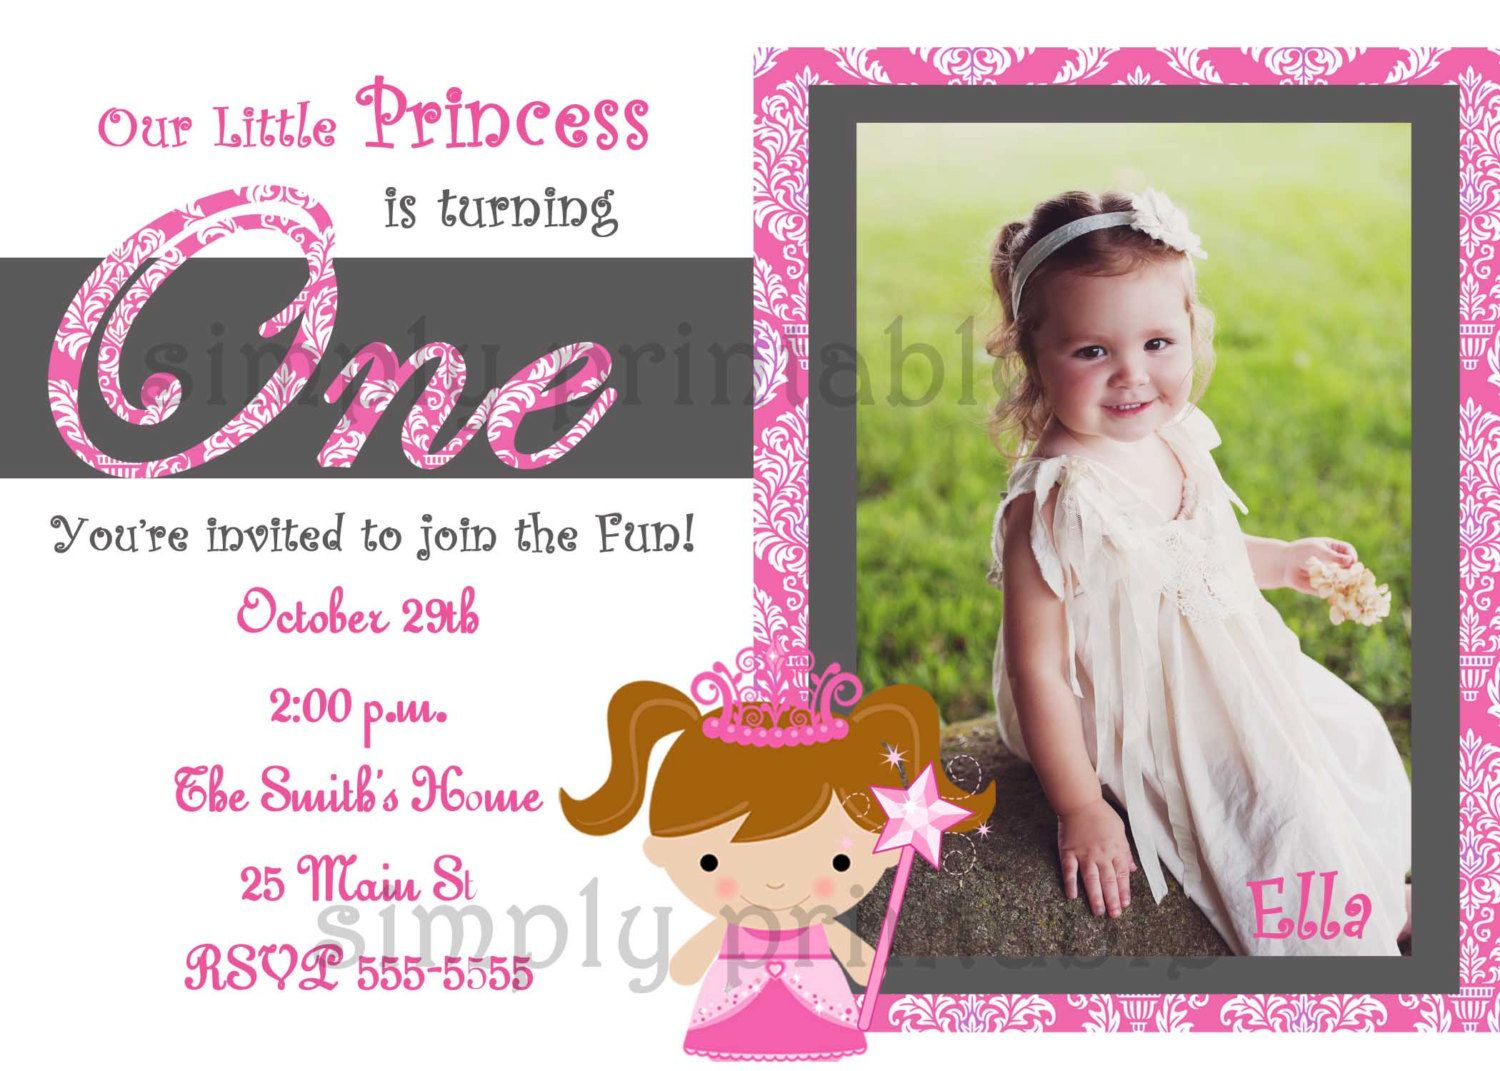 My Daughter Birthday Invitation Message 28f0815b795d27d870205fce2ded65f1